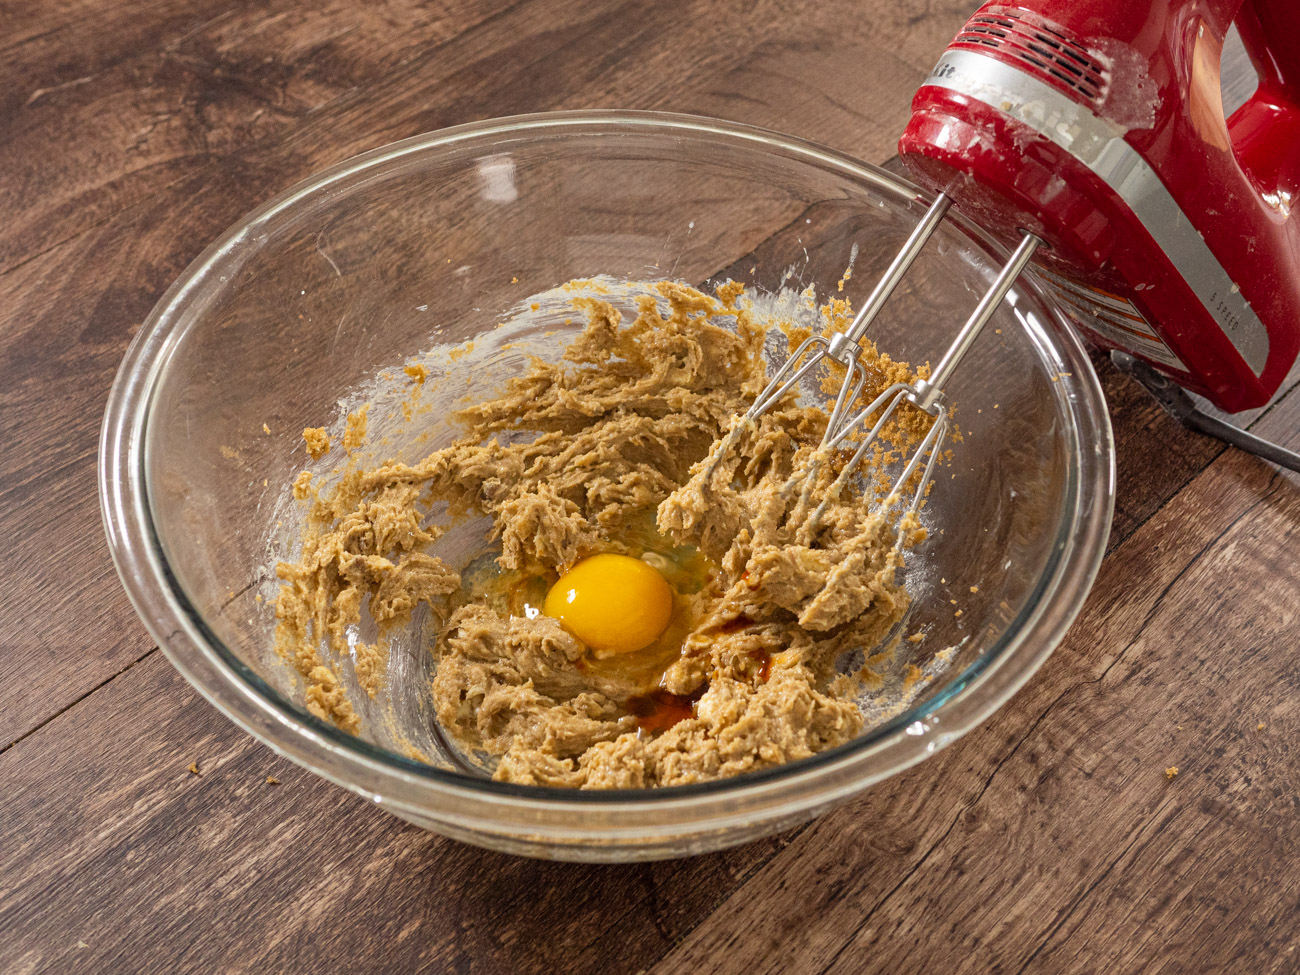 For the outer cookie dough cream together butter and sugar in a large bowl. Add in vanilla and egg and incorporate well.